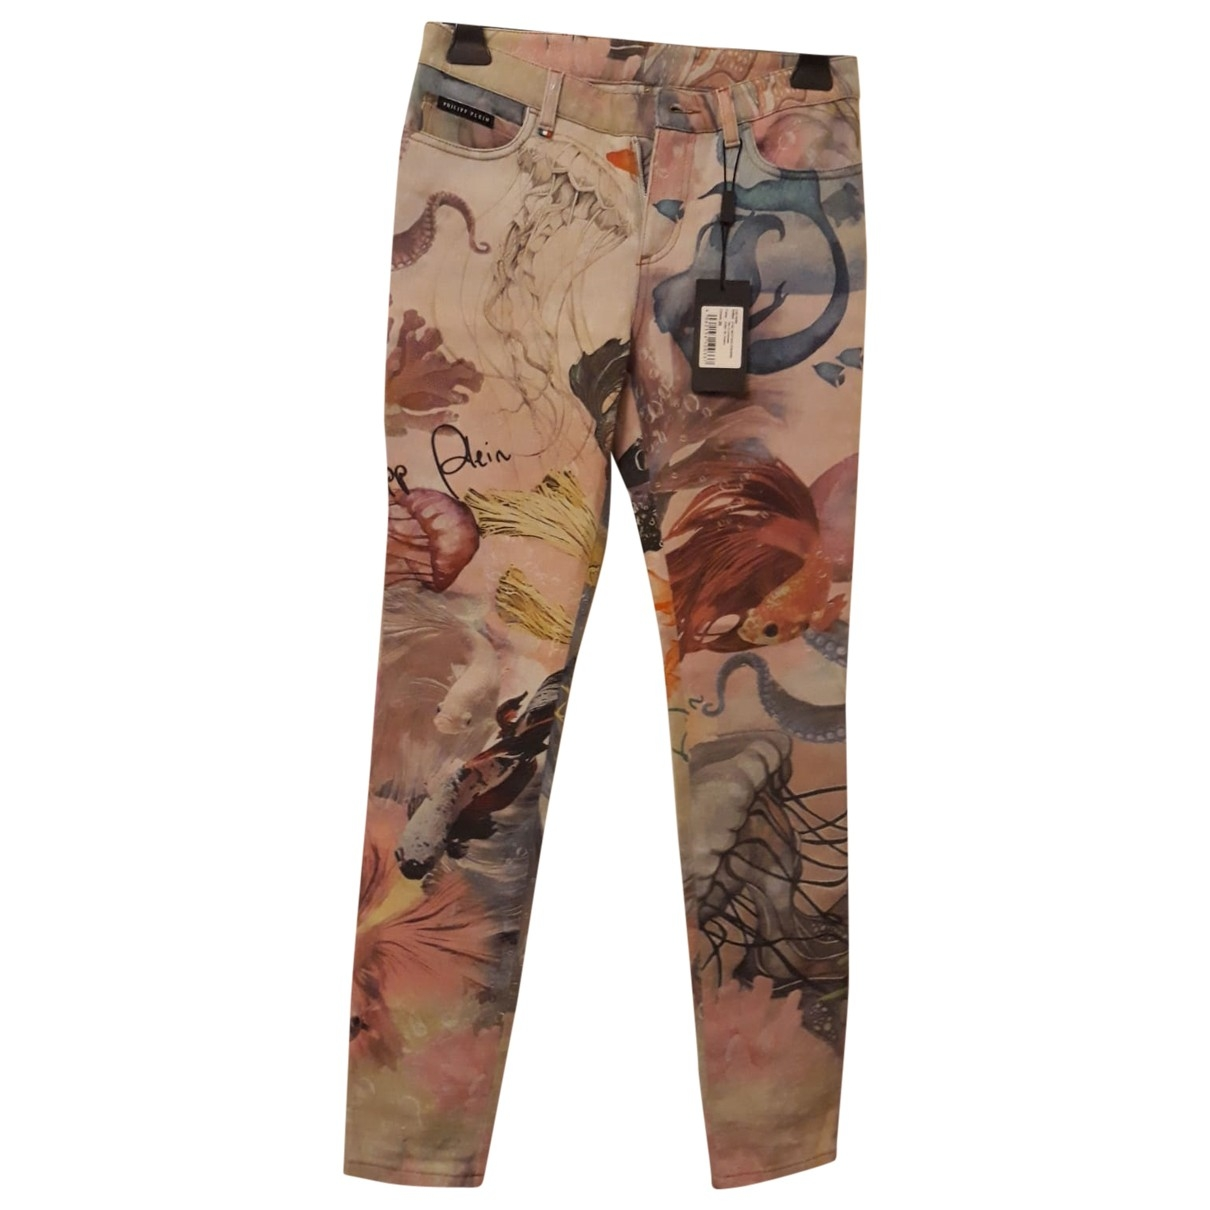 Philipp Plein \N Multicolour Denim - Jeans Trousers for Women 40 IT